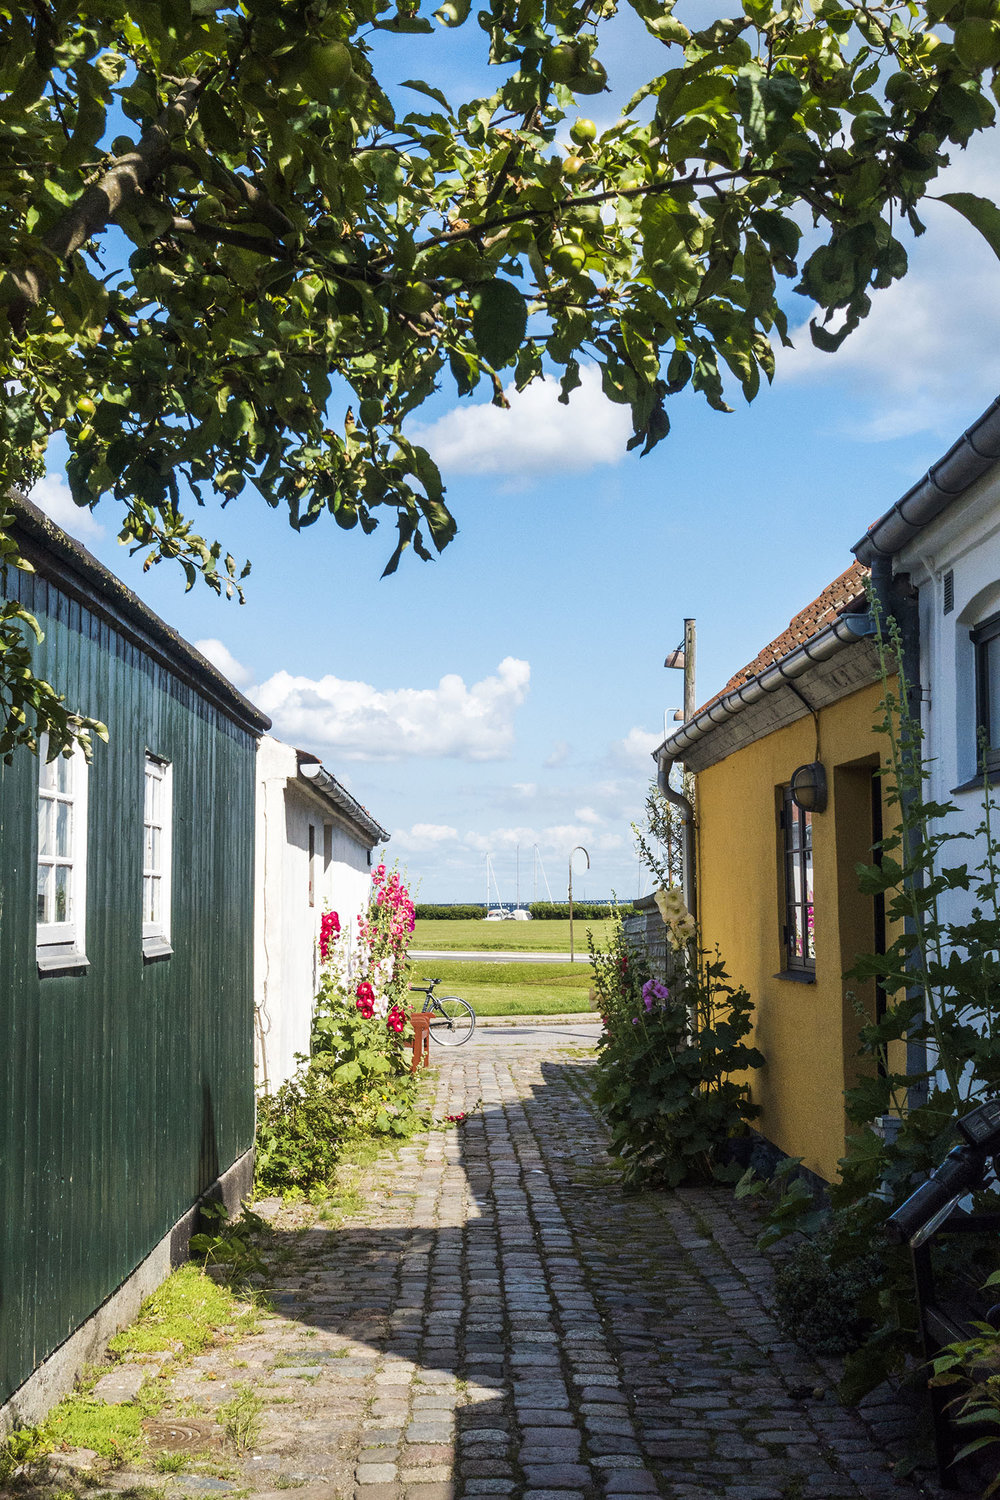 Dragør_130717_HelenaLundquist_7.small.jpg